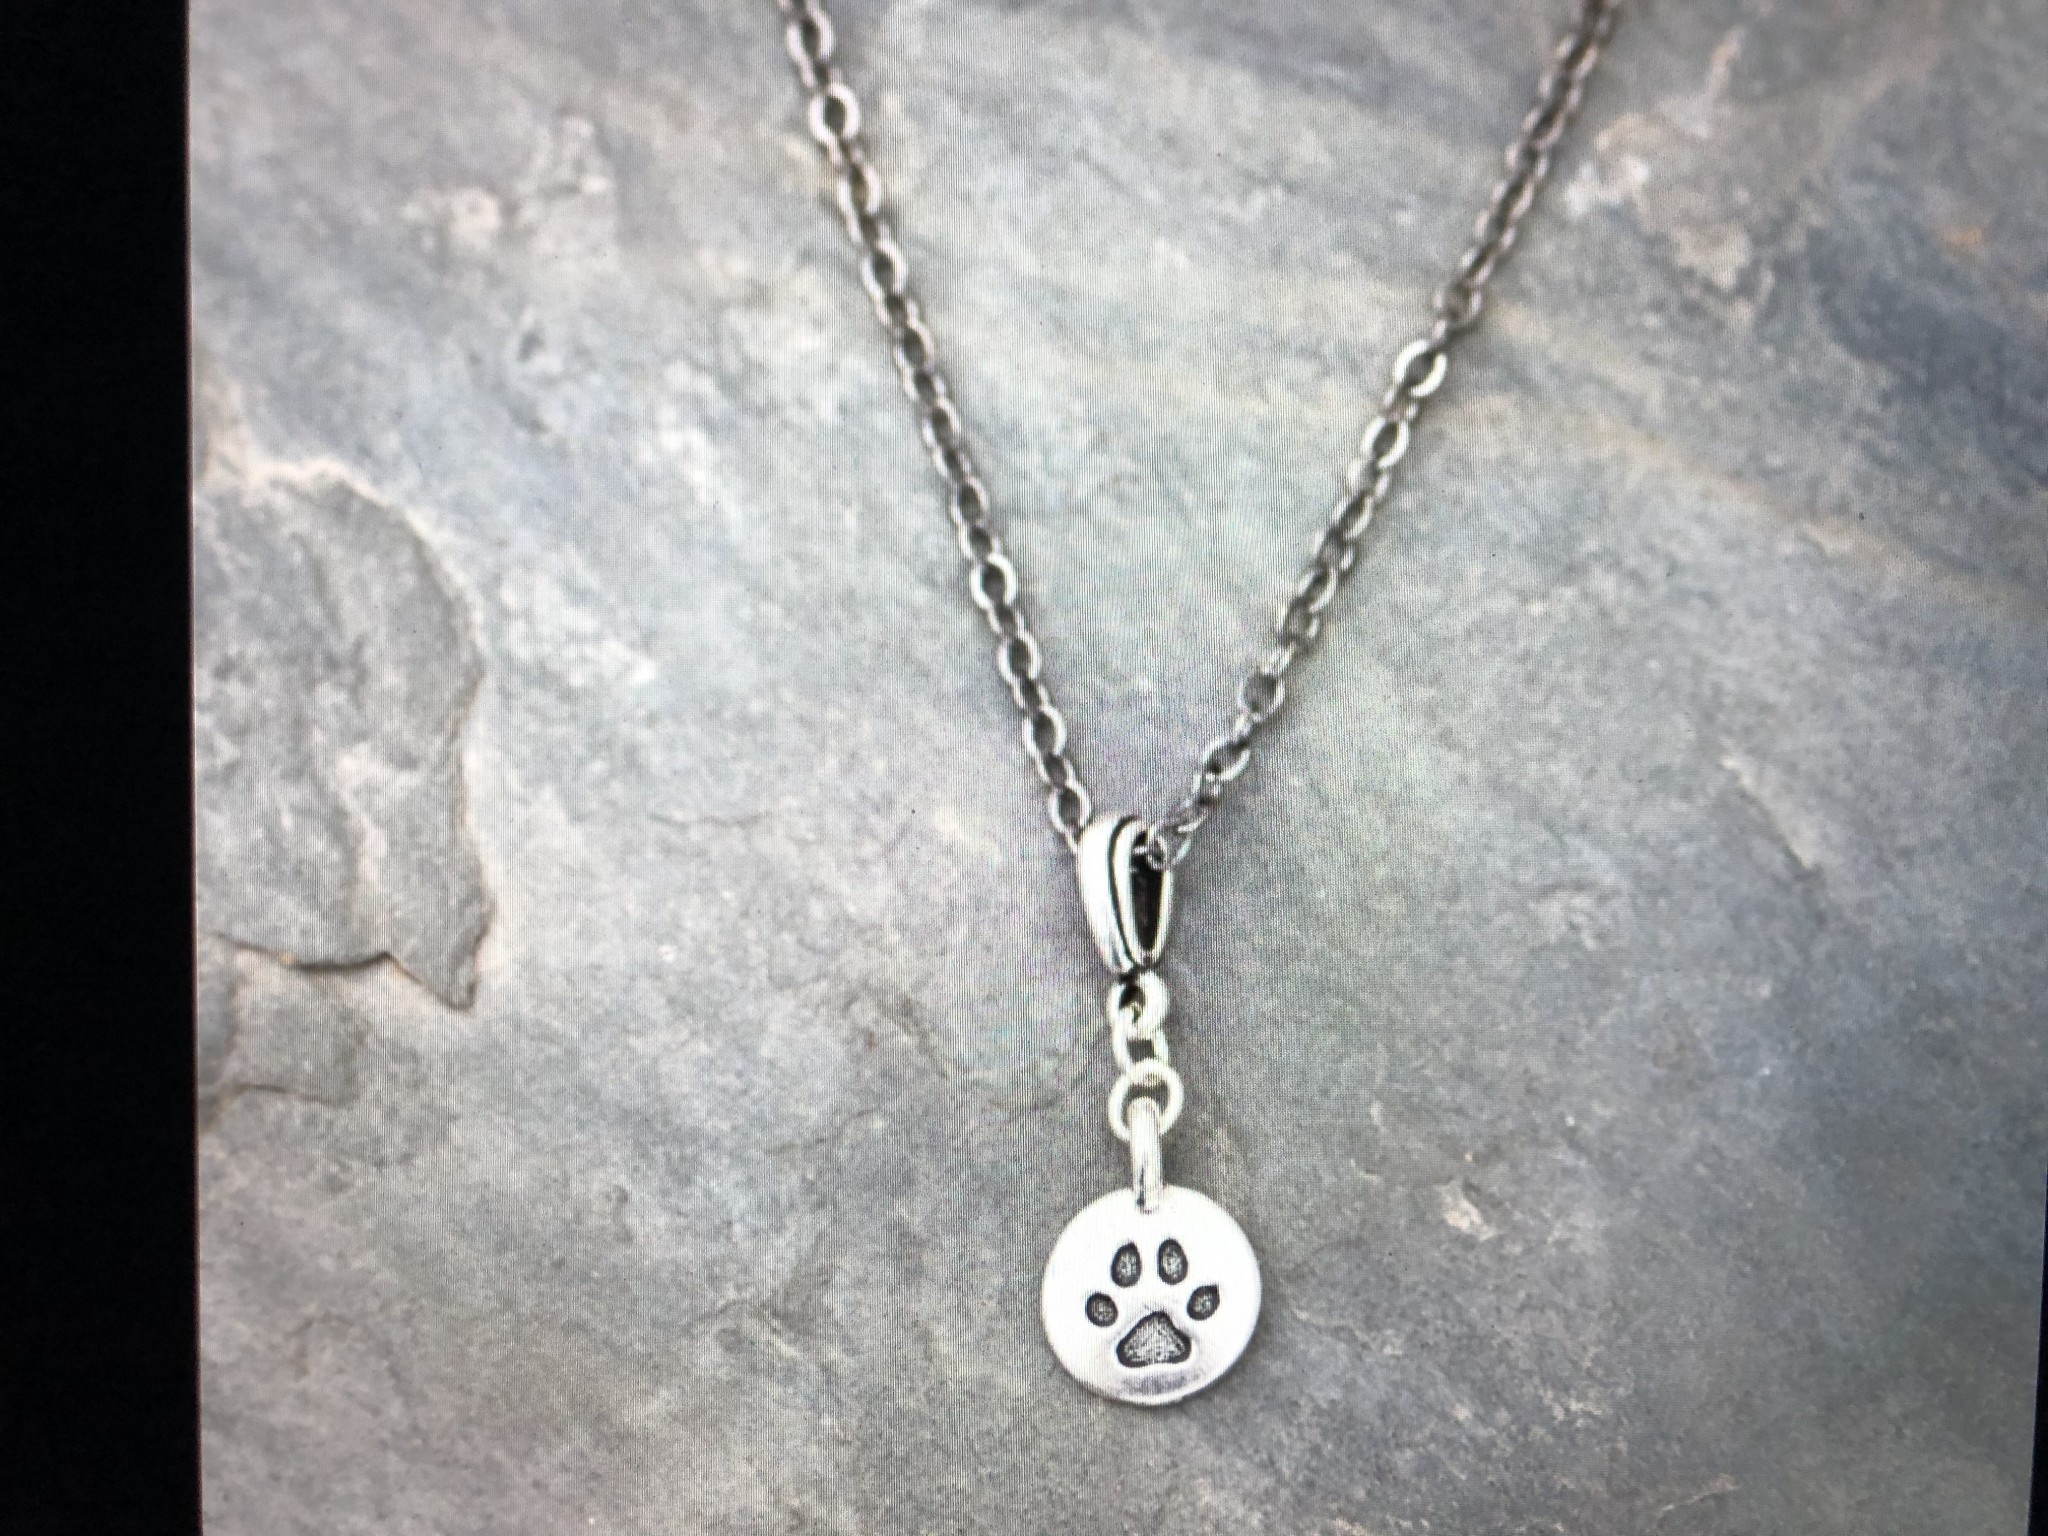 cool water jewelry NC386 Necklace: Dog Paw Charm